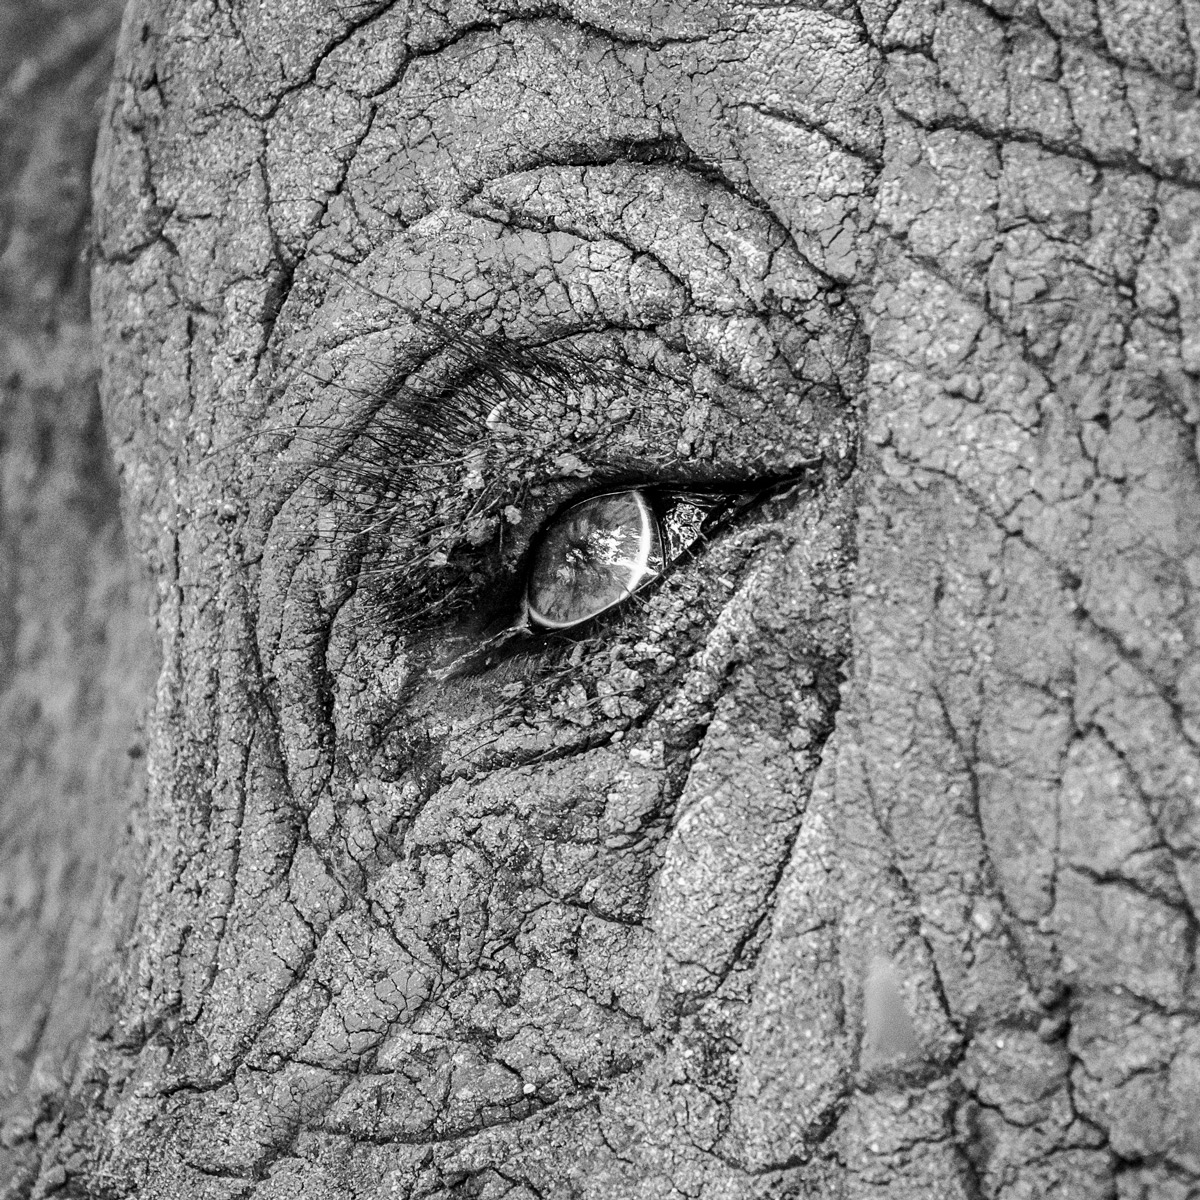 Close up of an elephant's eye in Kruger National Park, South Africa © Dirk Uys